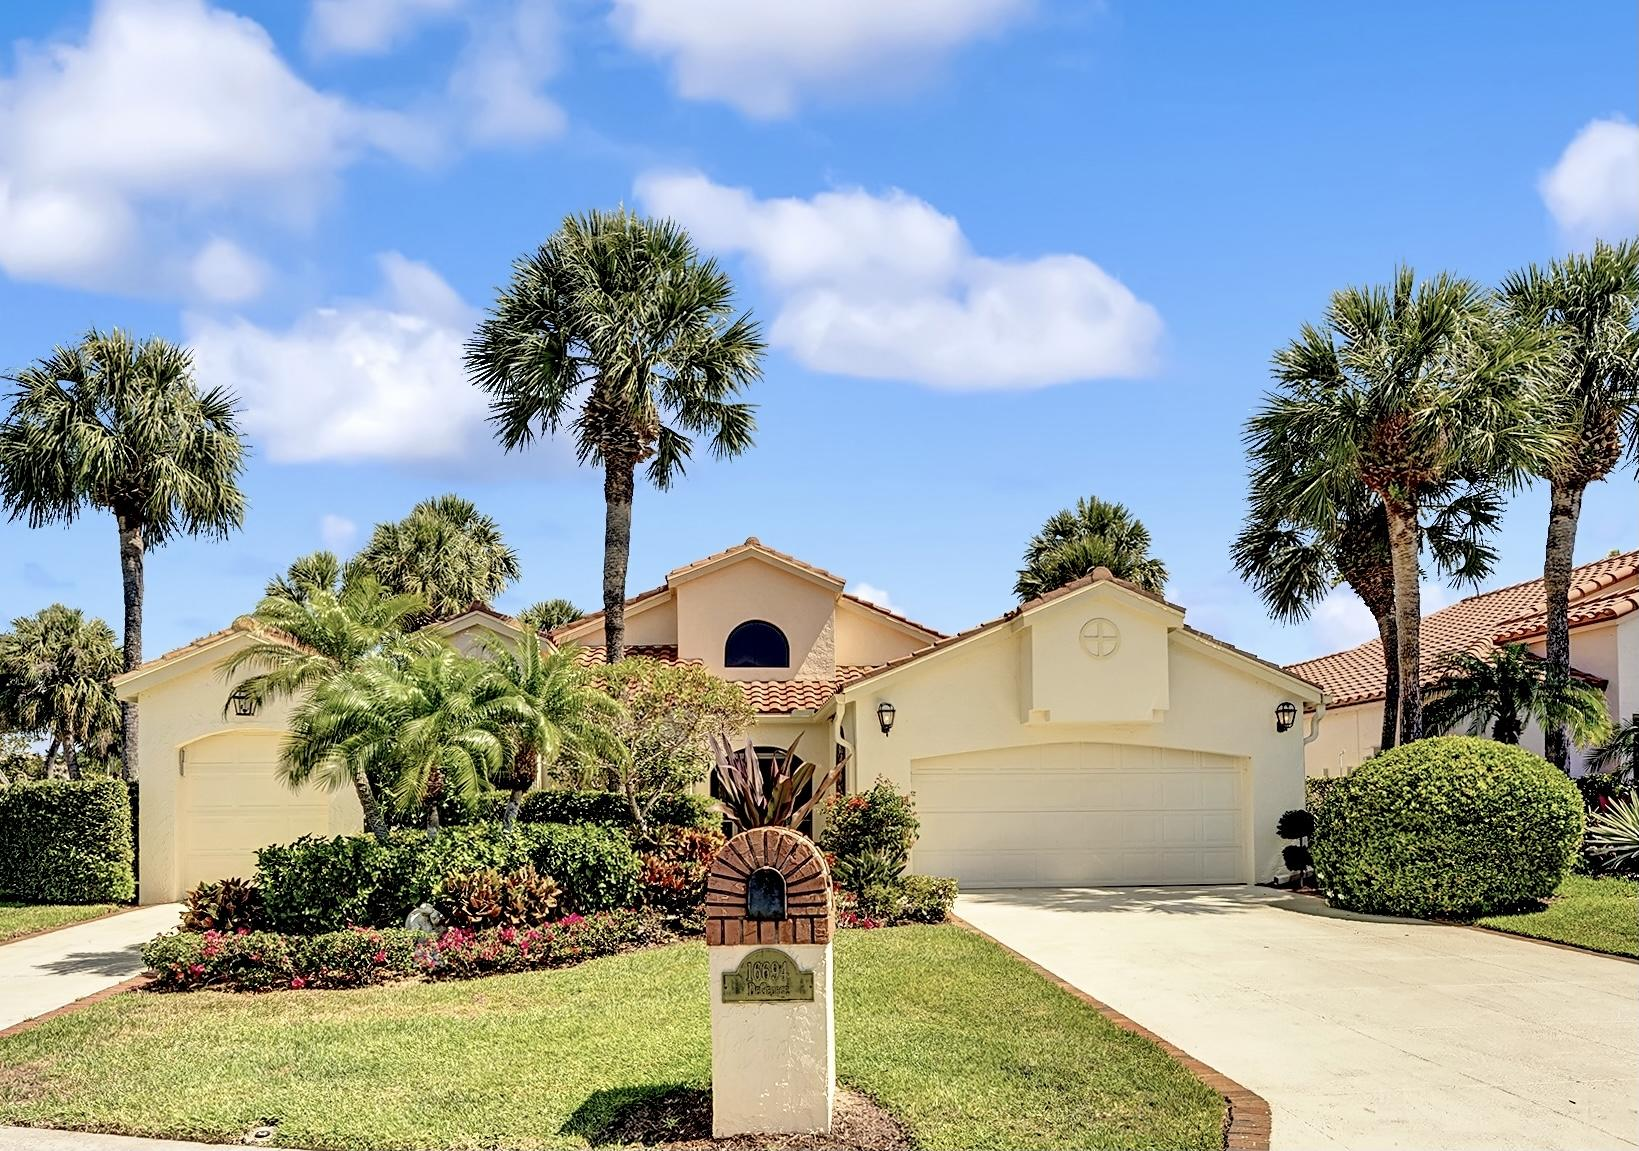 Situated in Jupiter's highly sought after Jonathans Landing, this home will not last long! 16694 Hidden Cove Drive is a rarely available property, located in the Hidden Cove enclave. This charming home enjoys exceptional views East over the championship golf course's 18th hole and the marina & yacht basin. Located on a prime, corner homesite on the cul-de-sac, this property affords the ultimate in country club living. 3 BR and 2.5 baths, screened in patio with expansive views, and in immaculate condition. Updated interiors, and elegant furnishings provide for a move-in ready option. A full two car garage, along with separate golf cart garage provide added security and convenience. This property is being sold fully  furnished.